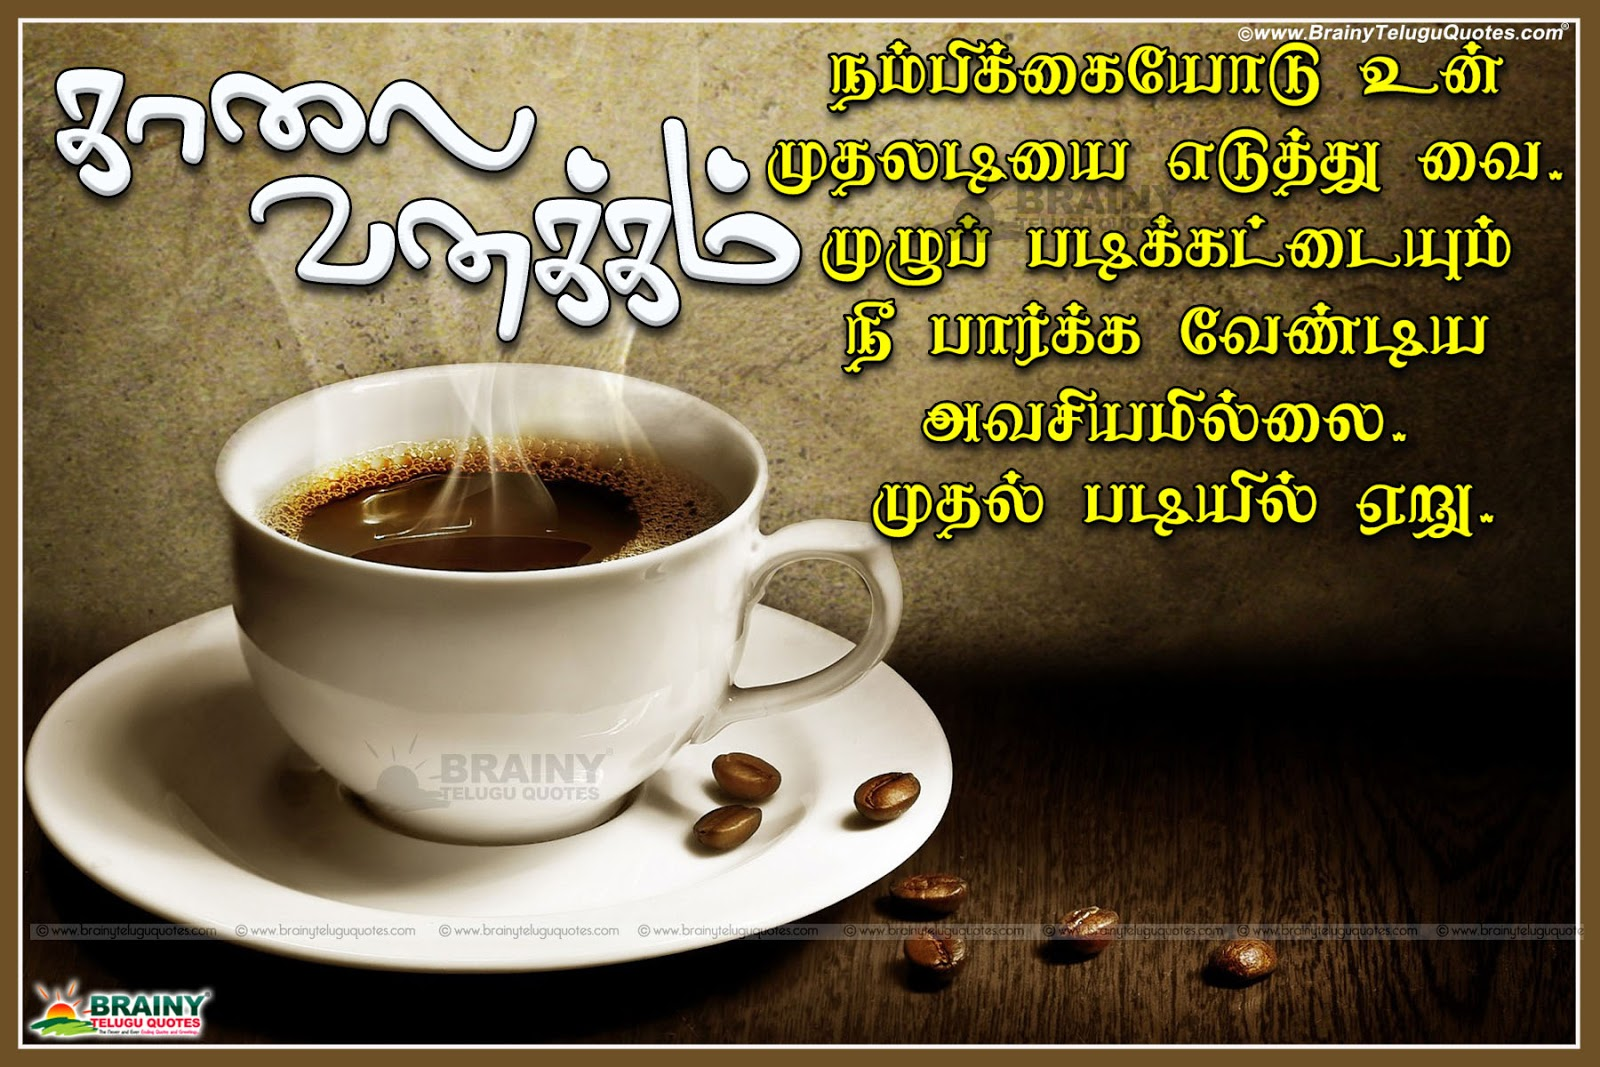 Good Morning Quotes In Tamil With Pictures The Emoji